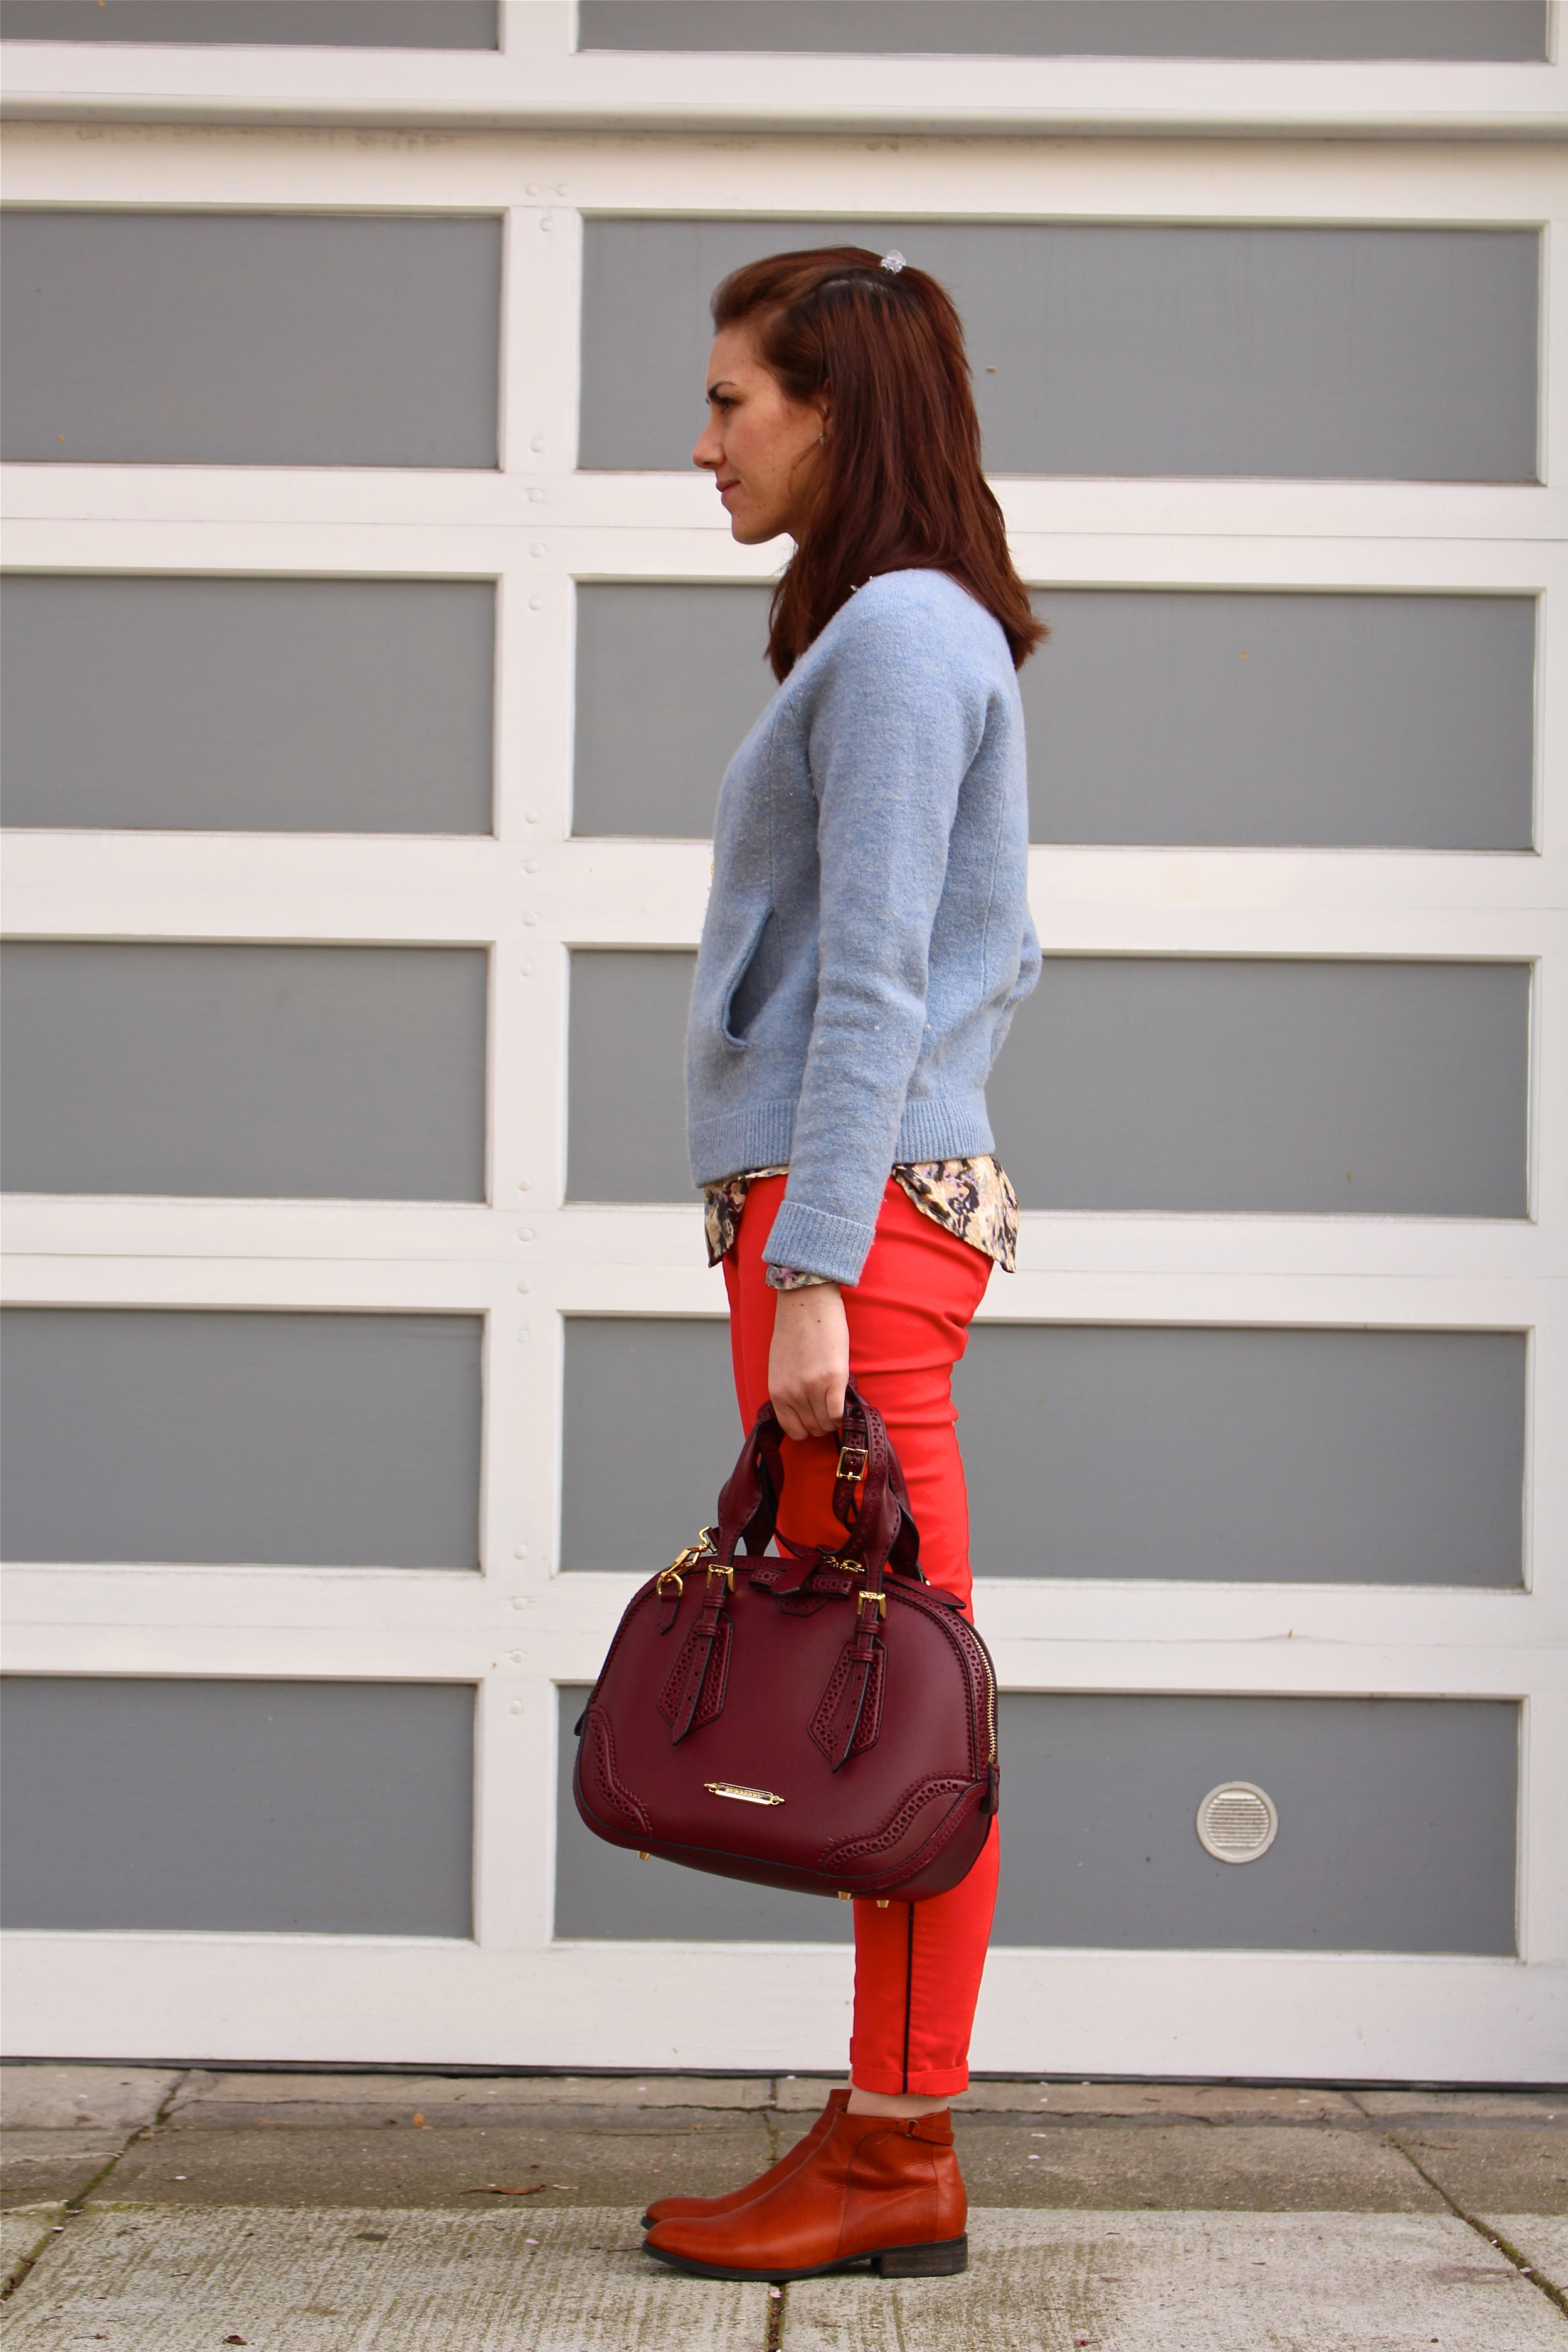 Pants: Gap; Shirt: UK Style by French Connection, Sears; Sweater Jacket: J.Crew; Boots: Coclico, Gilt; Bag: Burberry; Necklace: Vintage